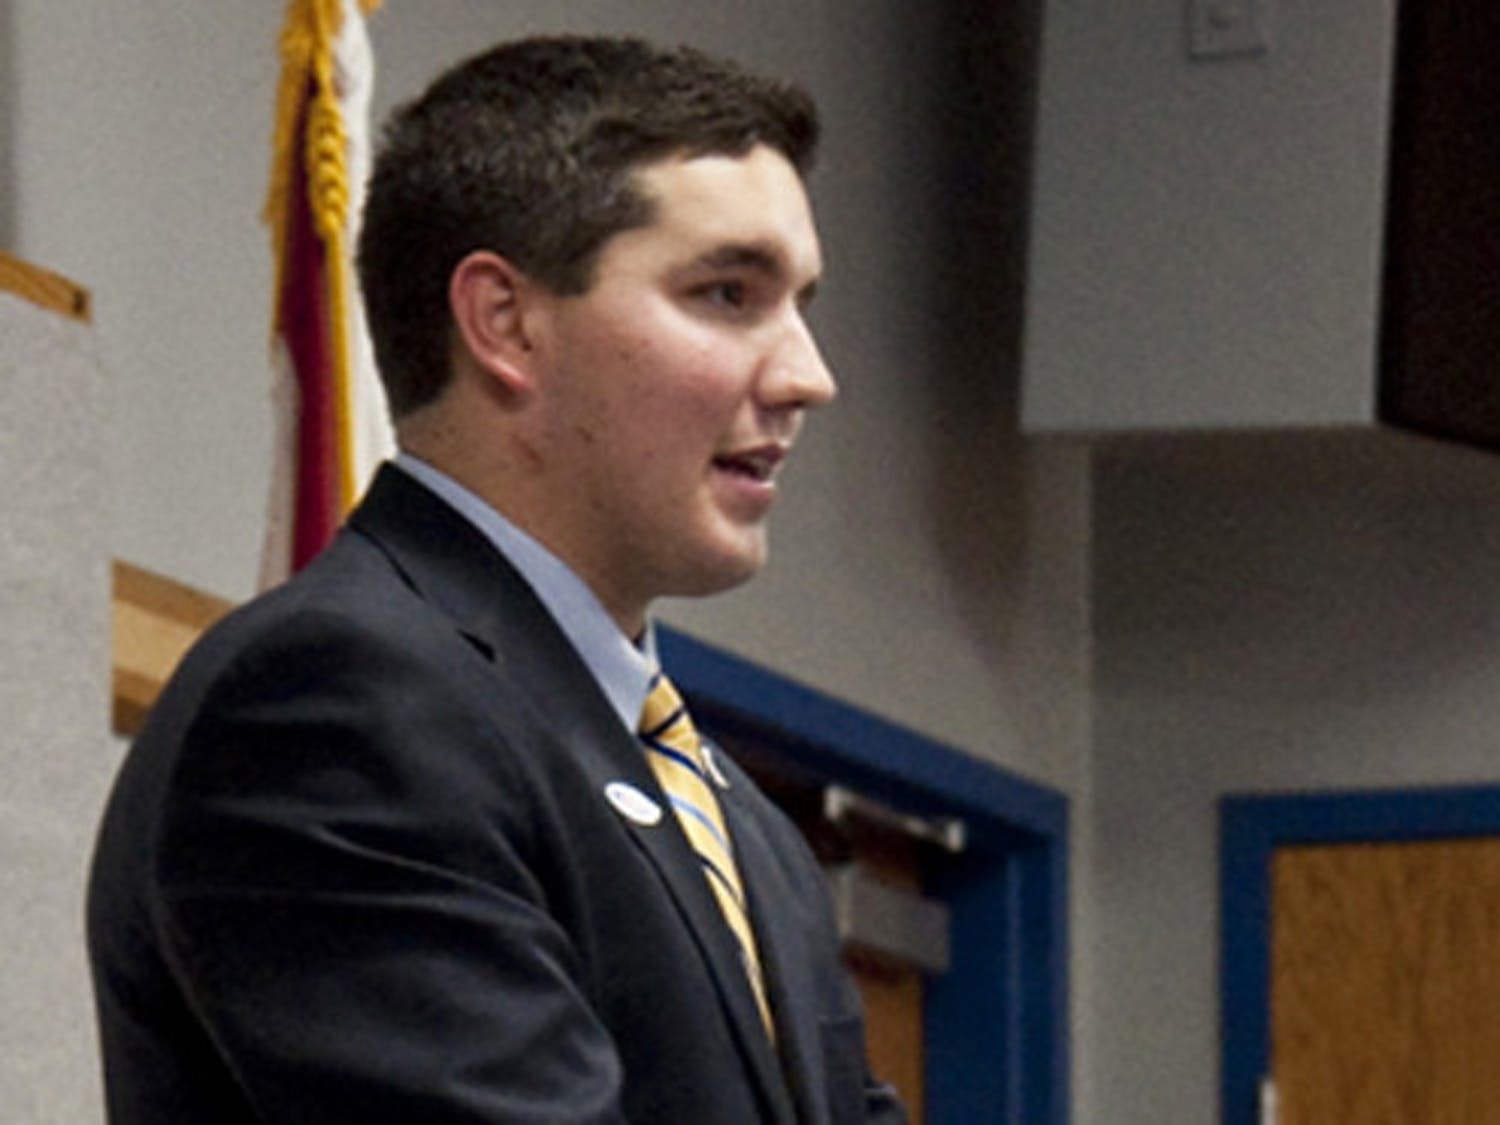 Then Student Body President Ben Meyers announced that he would be resigning from his position for personal reasons in October 2011.